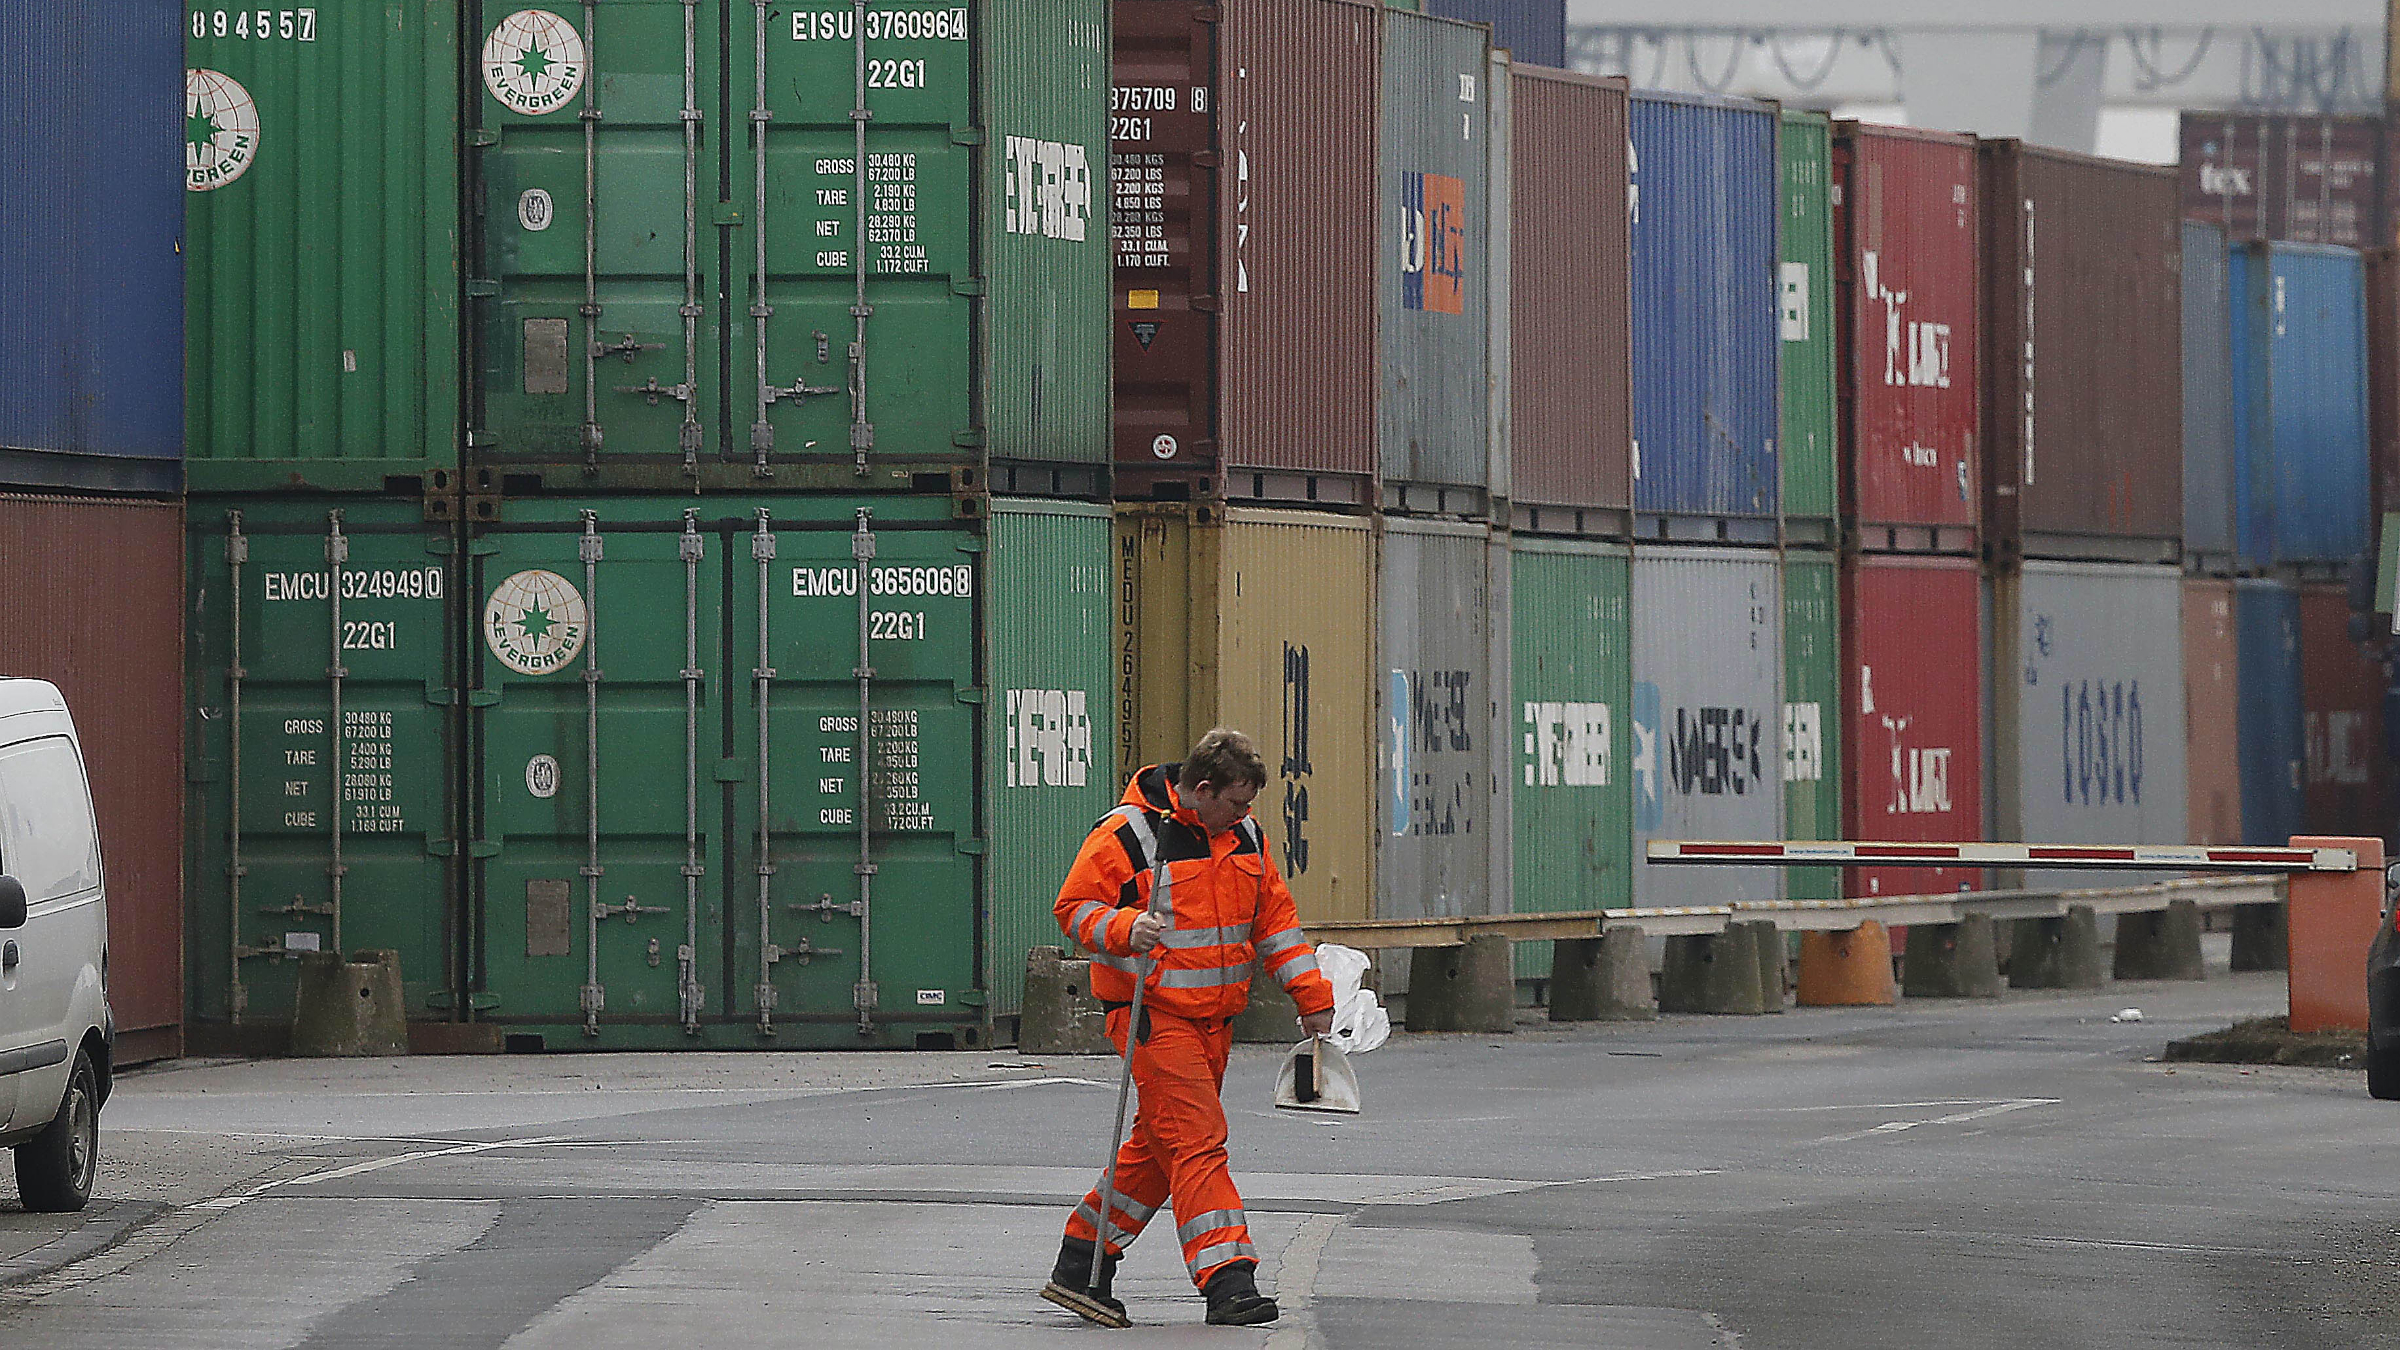 Containers are piled up at the Duisburg harbour, Germany, Thursday, Feb. 14, 2013. The German economy shrank by a larger-than-expected 0.6 percent in the final quarter in 2012, official figures showed Thursday, Feb. 14, 2013, in a clear sign that the European financial crisis took its toll on the continent's largest economy. The quarterly decline was primarily due to a drop in exports as demand weakened from other European nations, many of which are in recession, the Federal Statistical Office said. (AP Photo/Frank Augstein